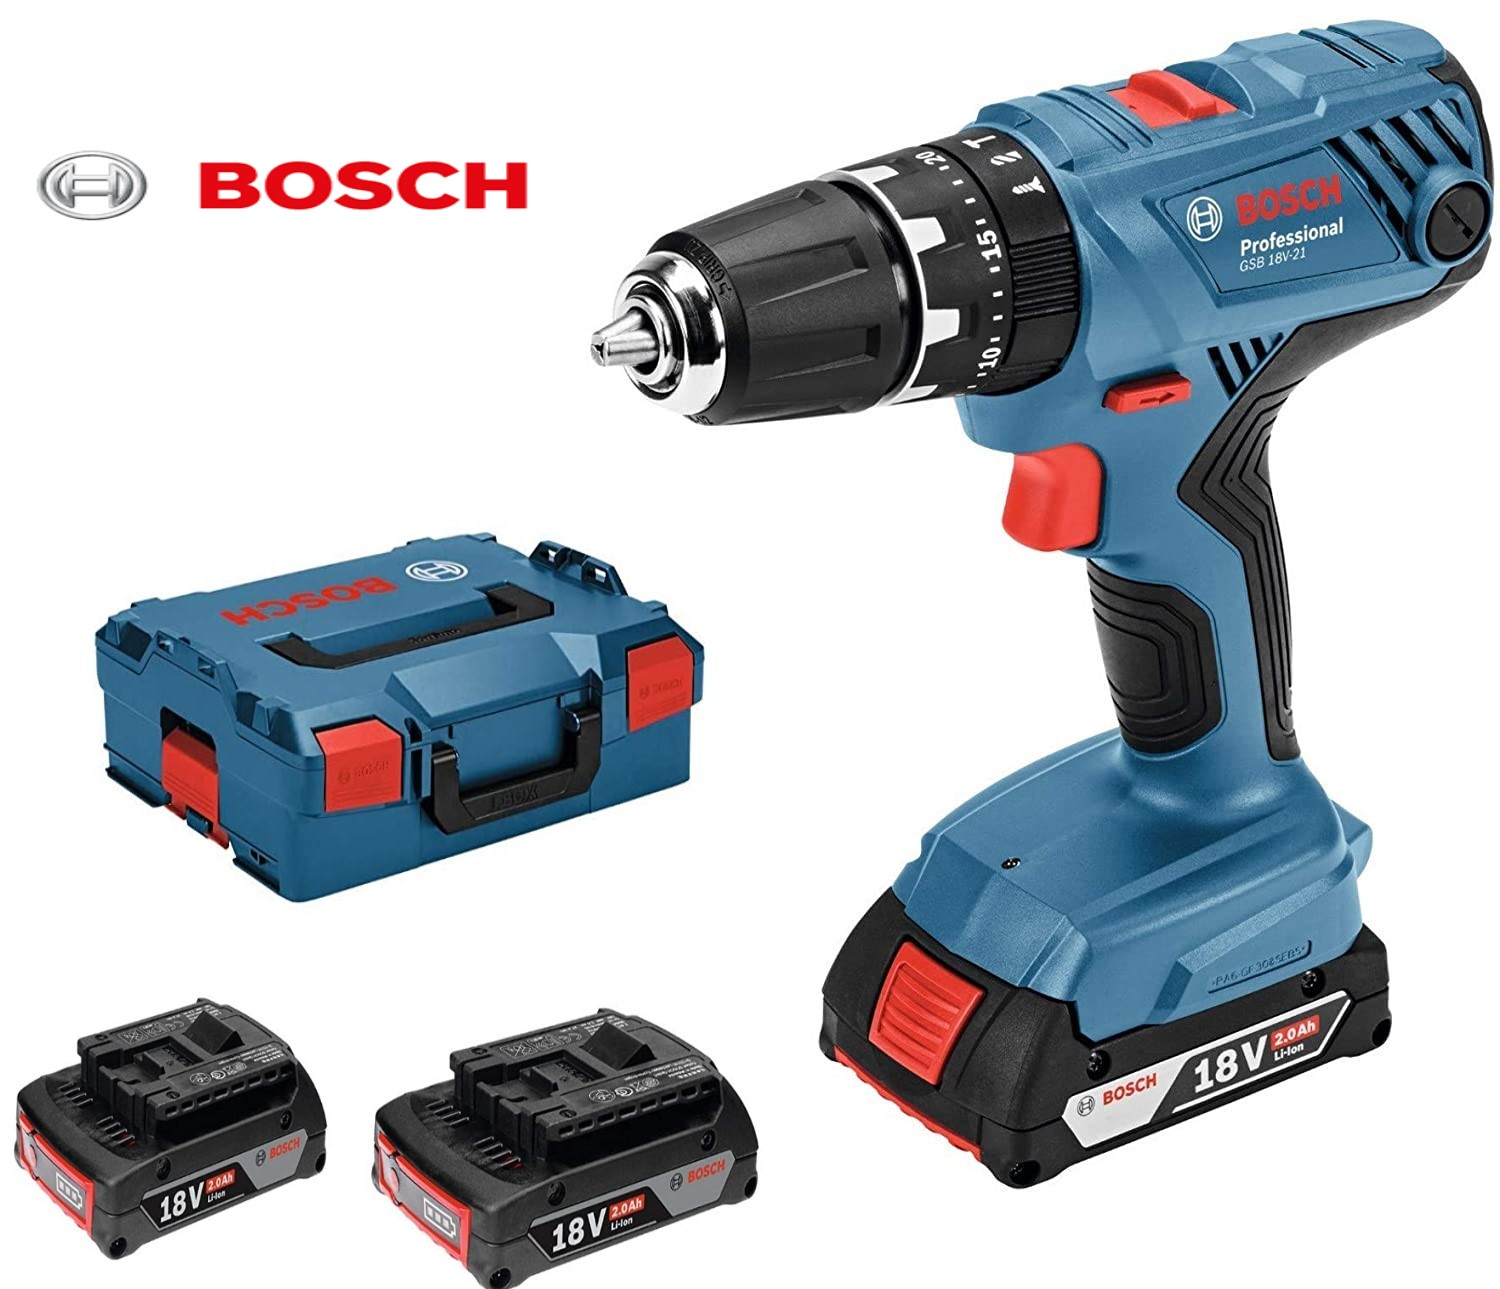 BOSCH Professional  DRILL 18V  COMBI DRILL KIT  GSB18V-21 | This tool is intended for drilling in wood with a maximum diameter of 35 mm, in steel up to 13 mm, and for screw diameters of up to 10 mm. | toolforce.ie